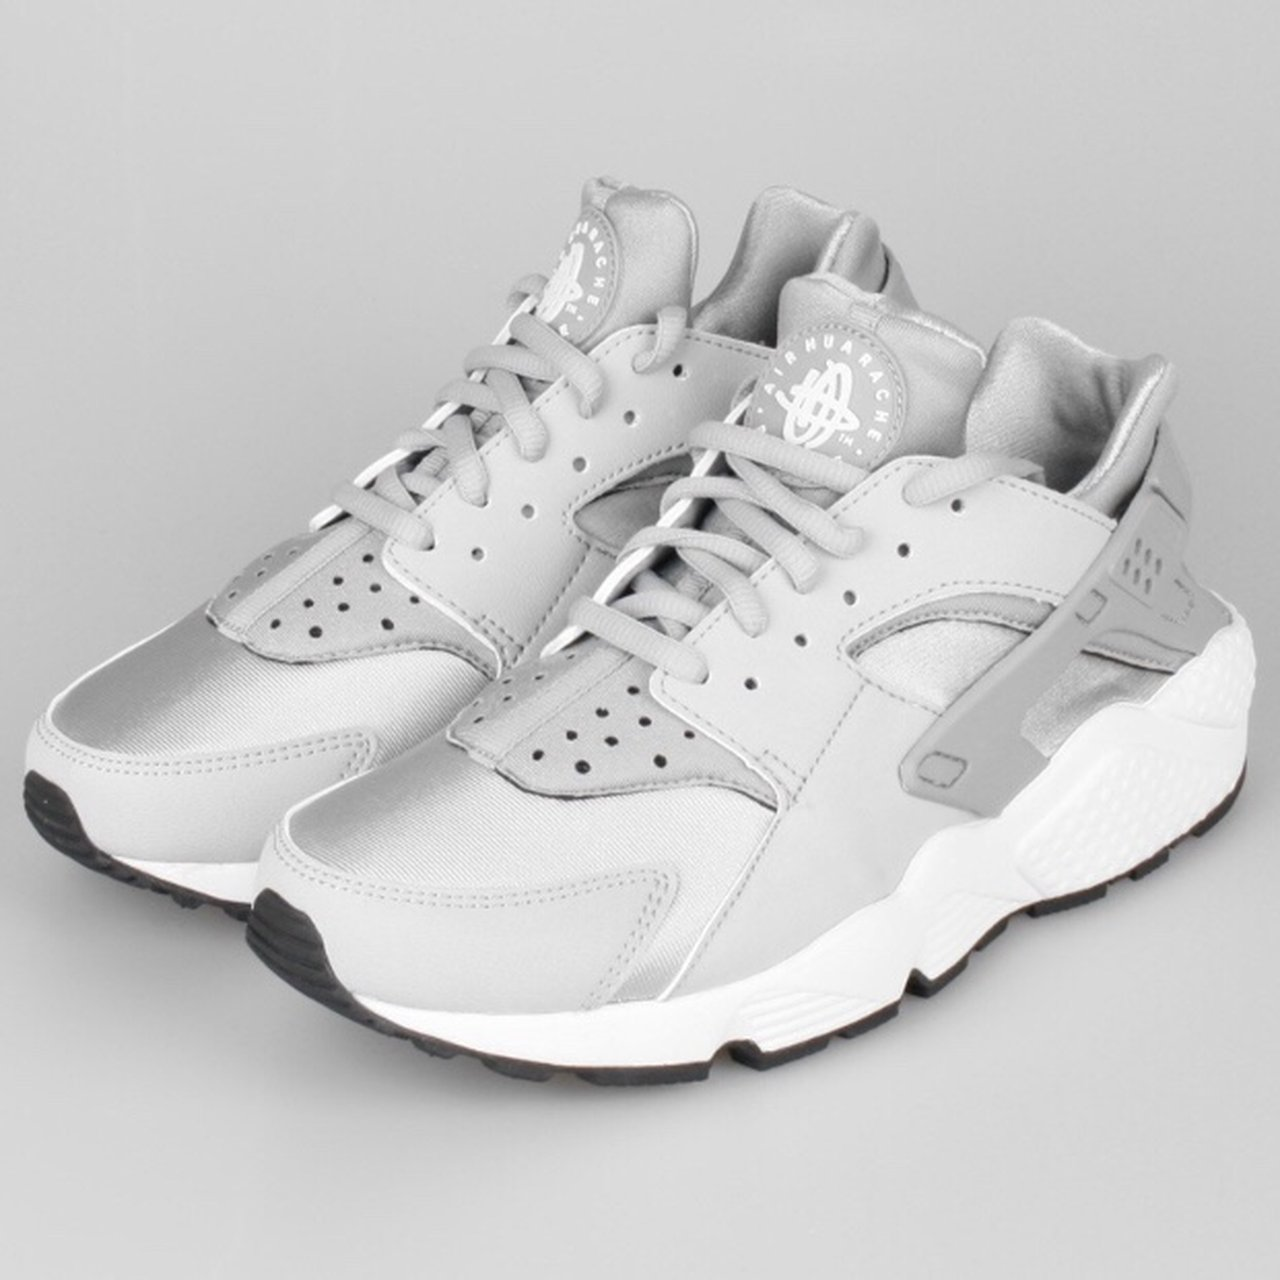 Silver grey white womens Nike Huarache trainers UK size 5.5. - Depop 7e4f80fcd